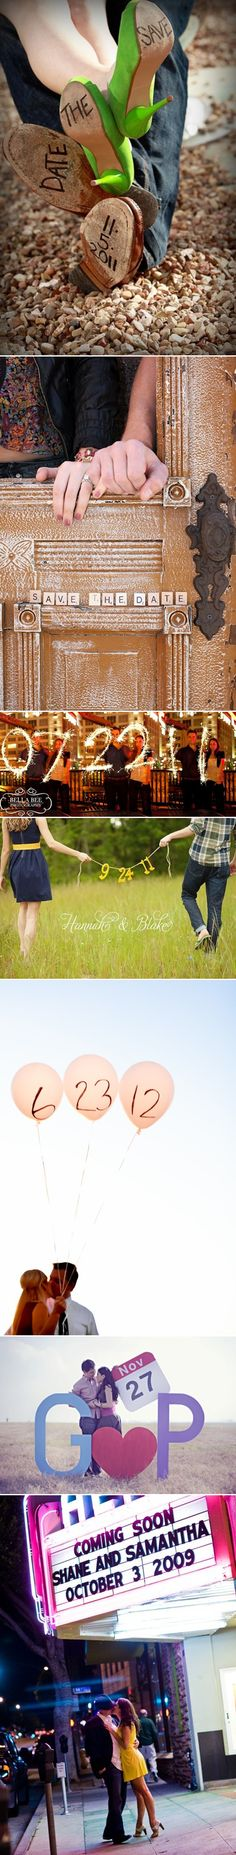 Save the Date >> Some really wonderful ideas!wonderful wedding save the date ideas Engagement Pictures, Wedding Pictures, Wedding Engagement, Engagement Ideas, Wedding Events, Our Wedding, Dream Wedding, Weddings, Wedding Pins